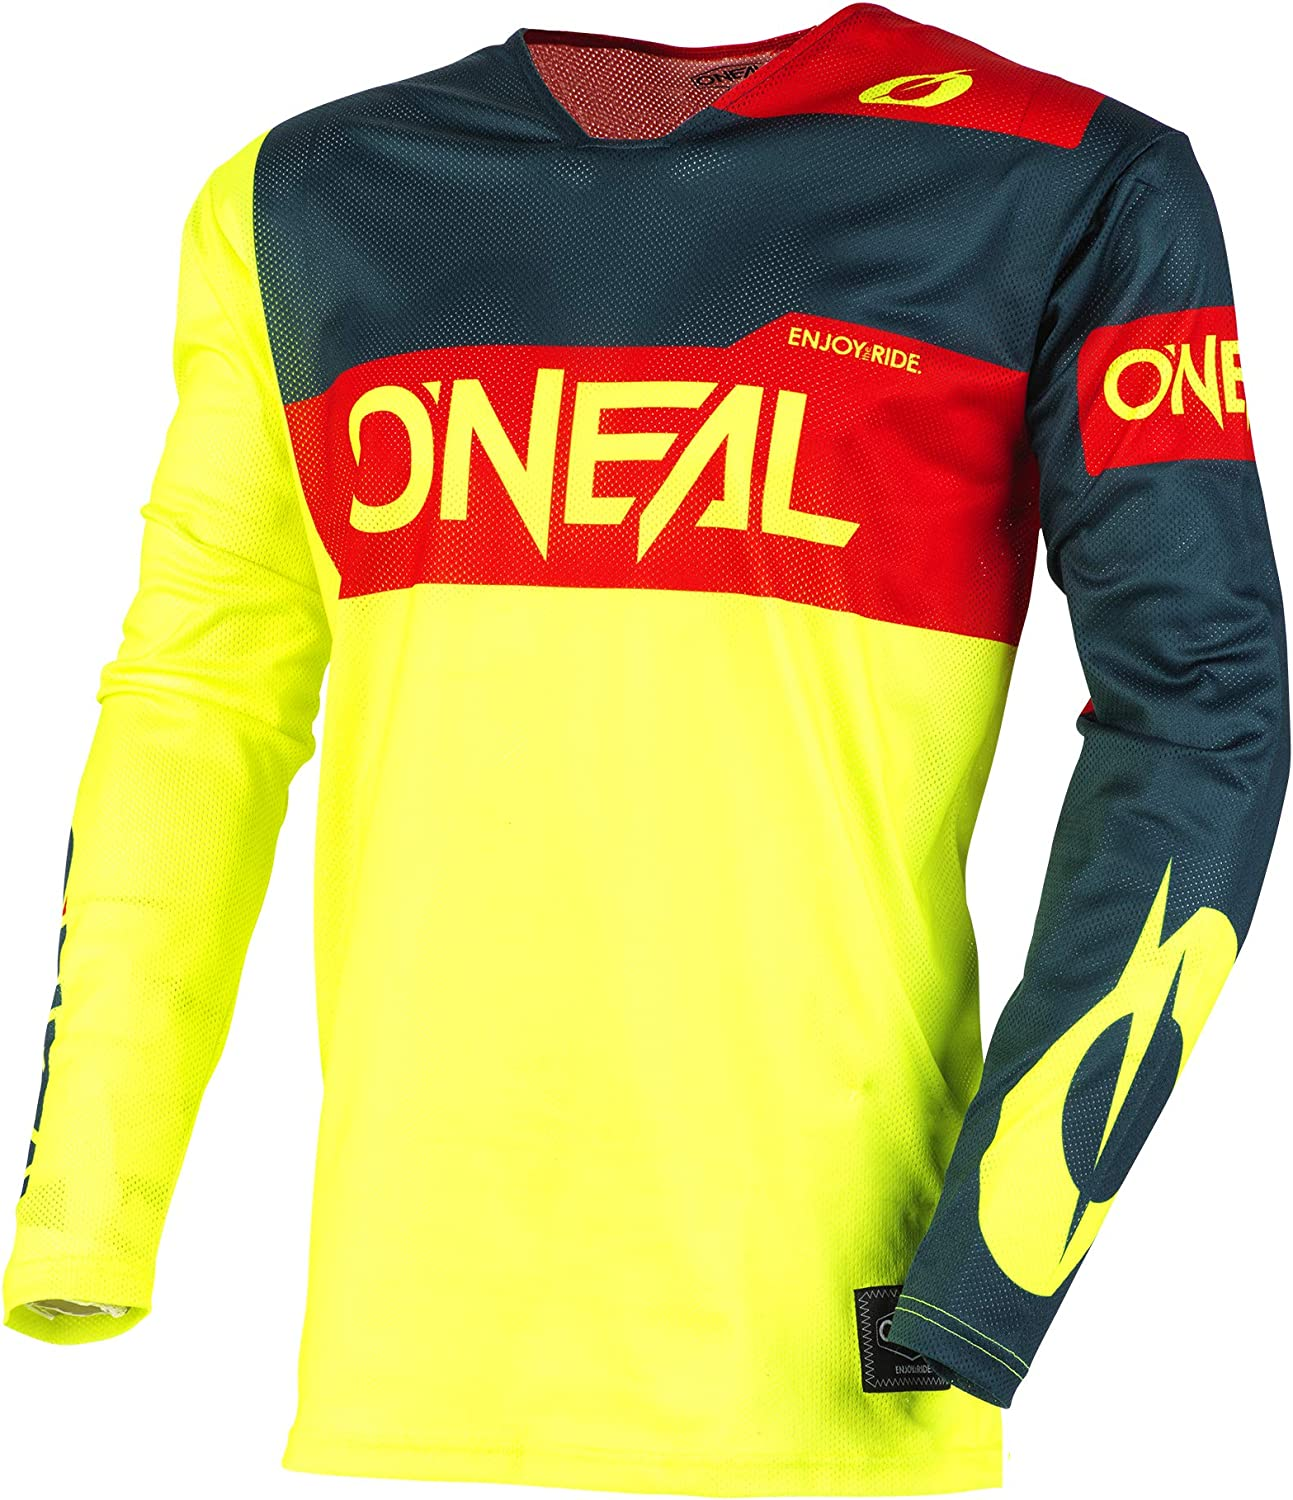 Gray//Blue//Red, L ONeal Airwear Freez Adult Jersey